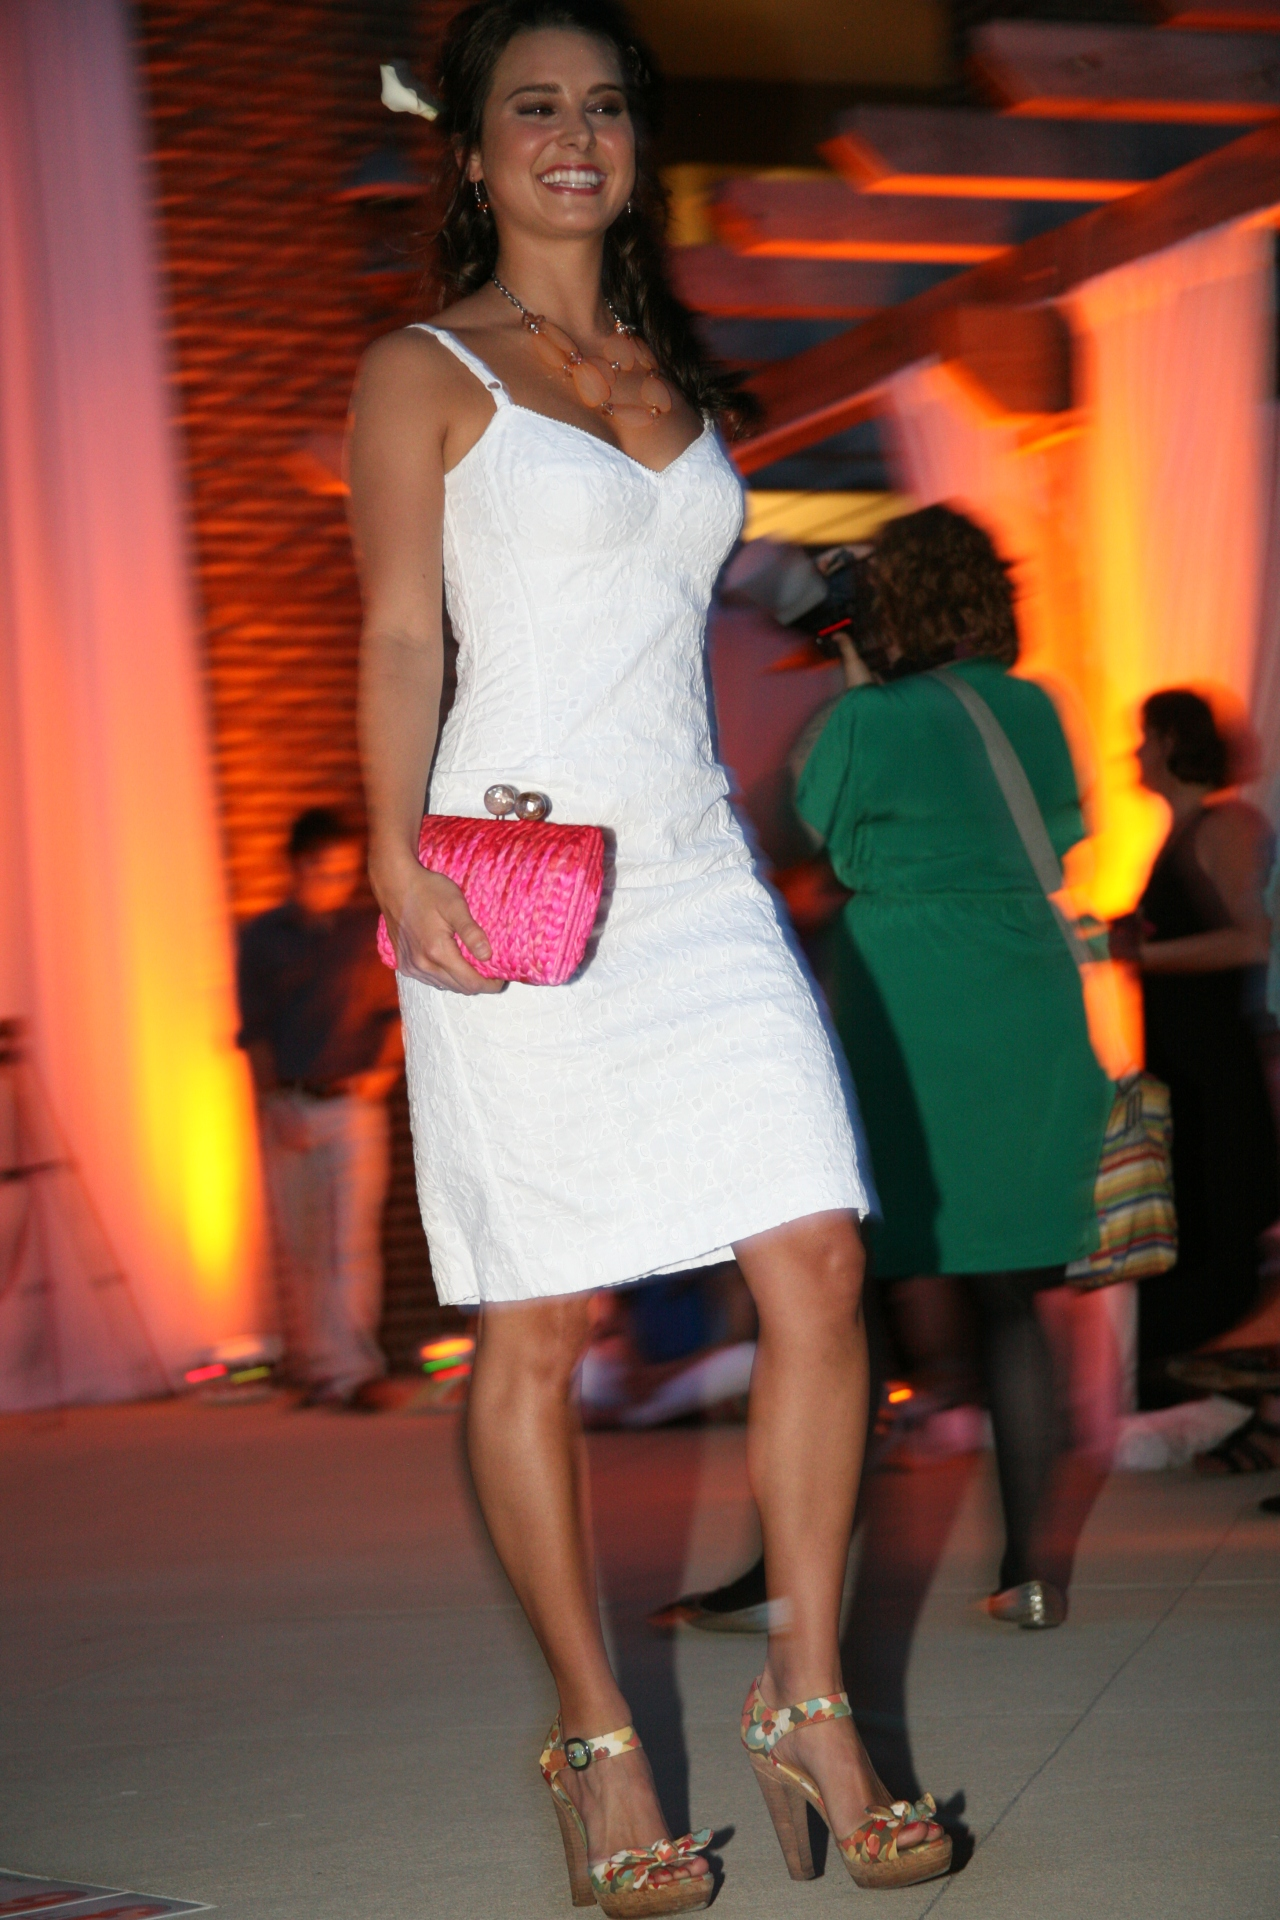 Simple white dress with a snazzy clutch for a pop of color! Fabulous fashion stylying by Southern Femme!